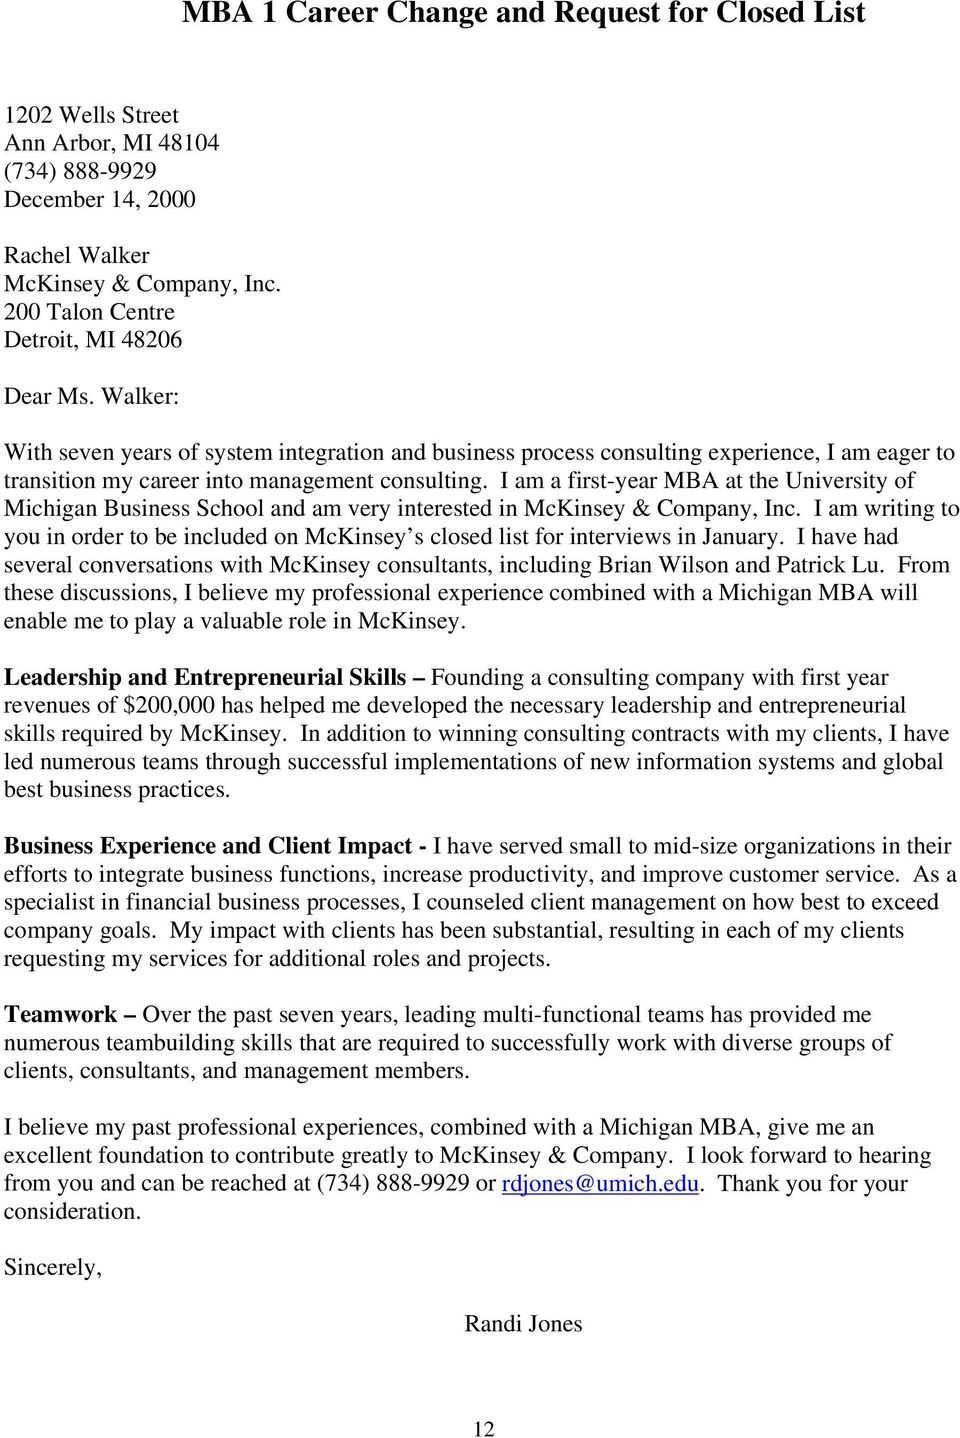 I am a first-year MBA at the University of Michigan Business School and am very interested in McKinsey & Company, Inc.